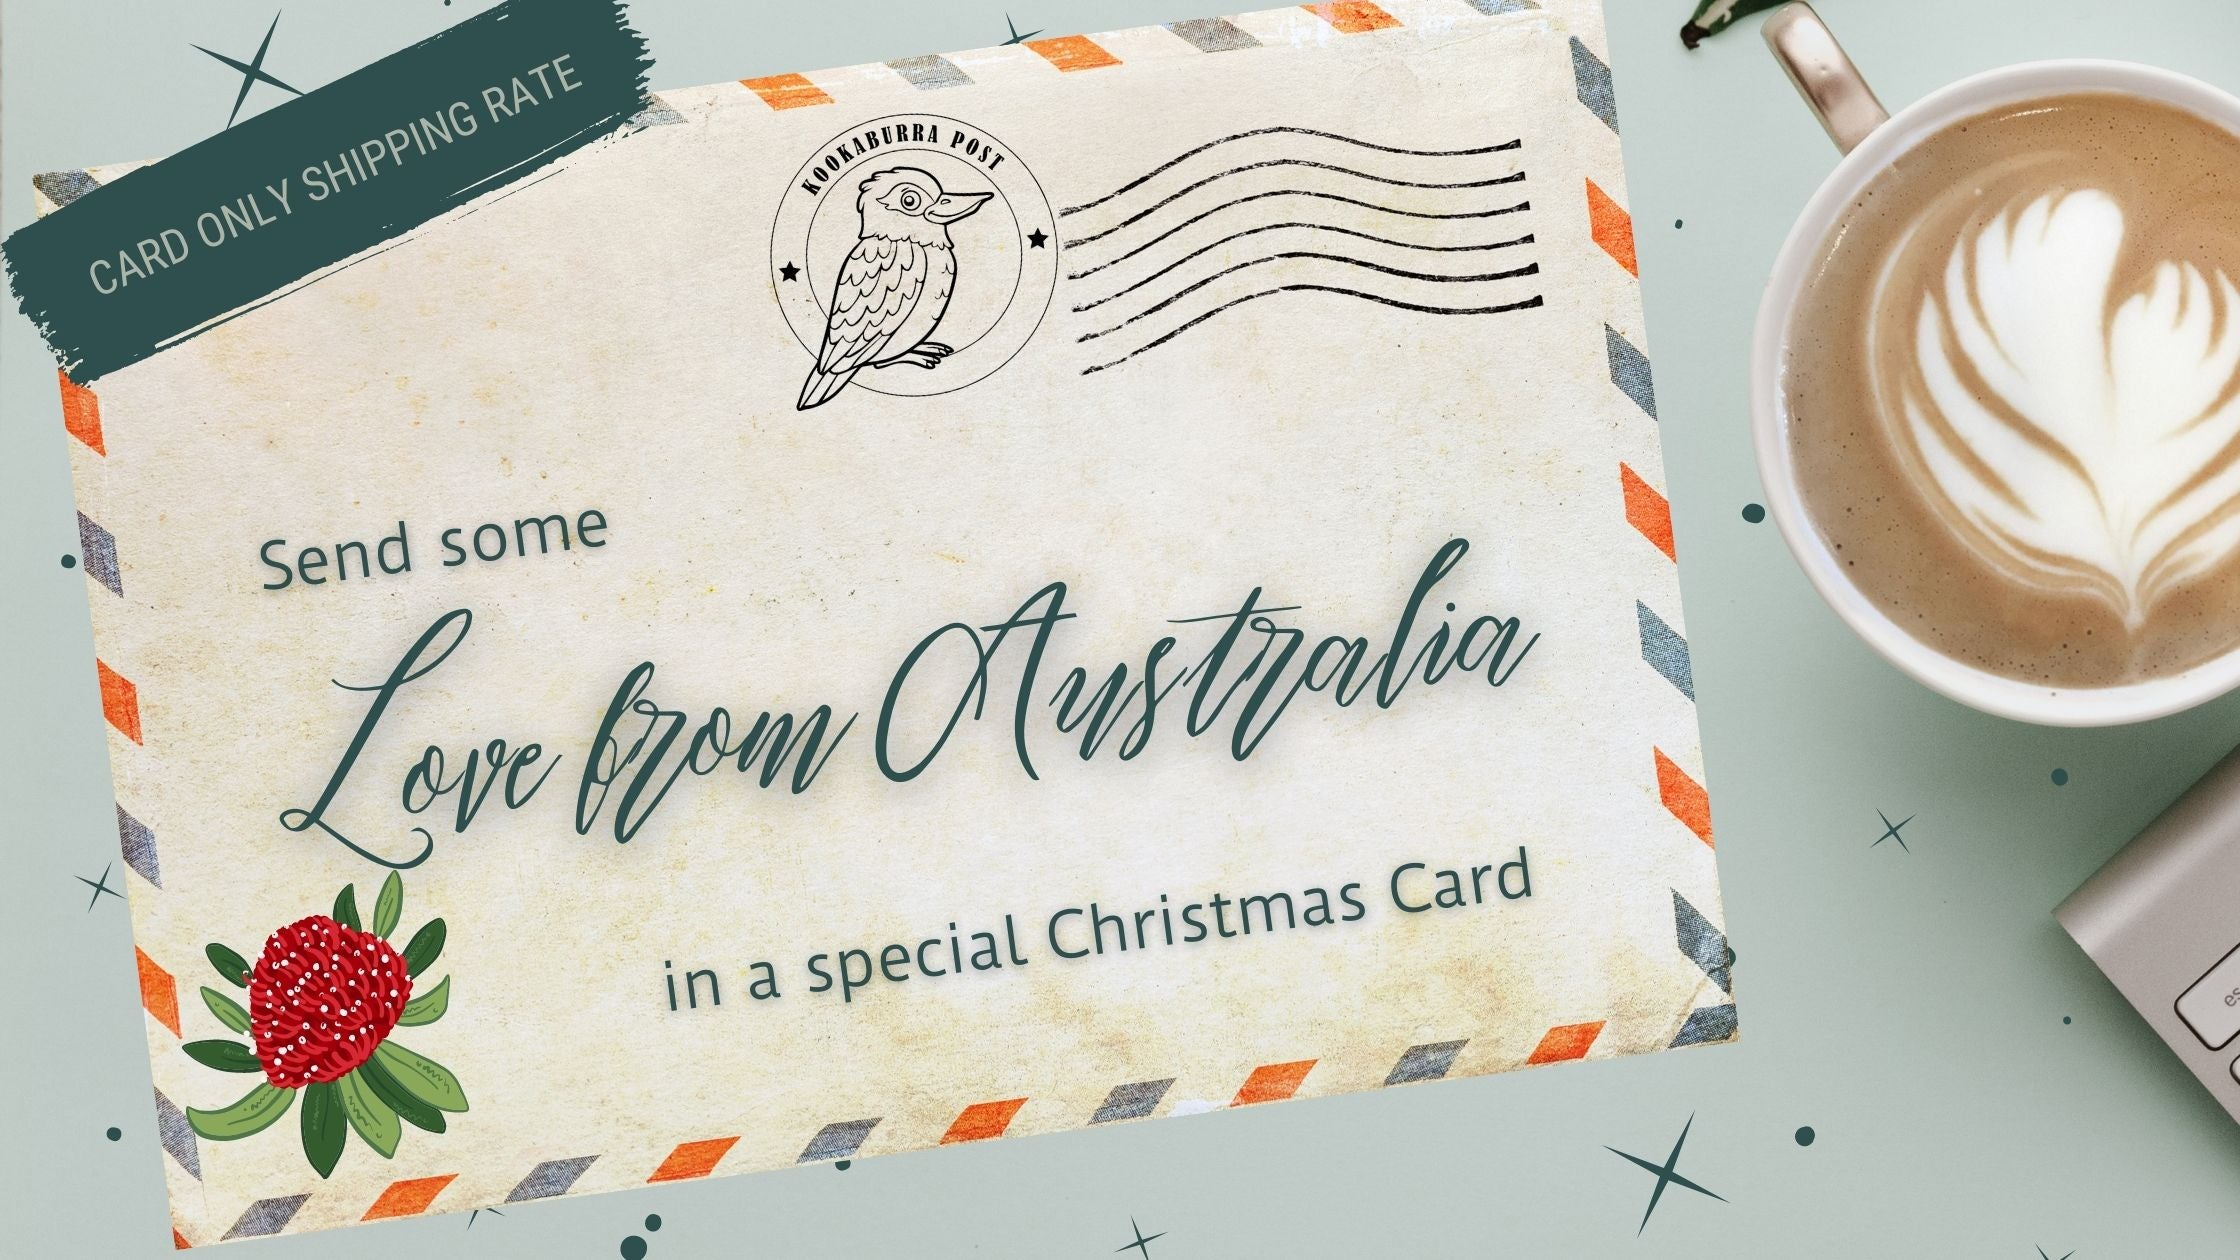 POST A CARD OVERSEAS FROM AUSTRALIA